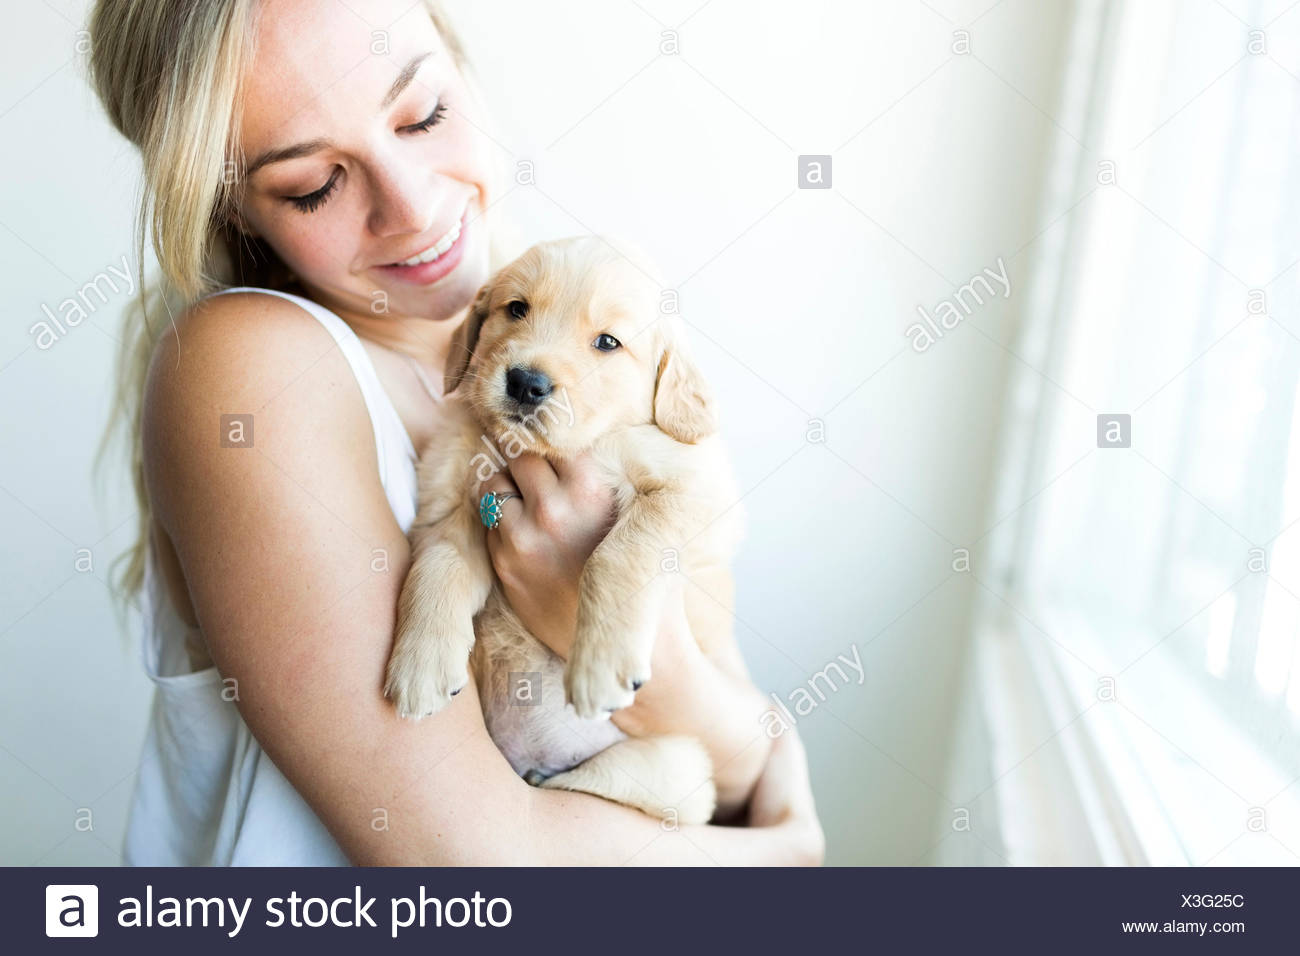 Woman holding chiot Golden Retriever Photo Stock